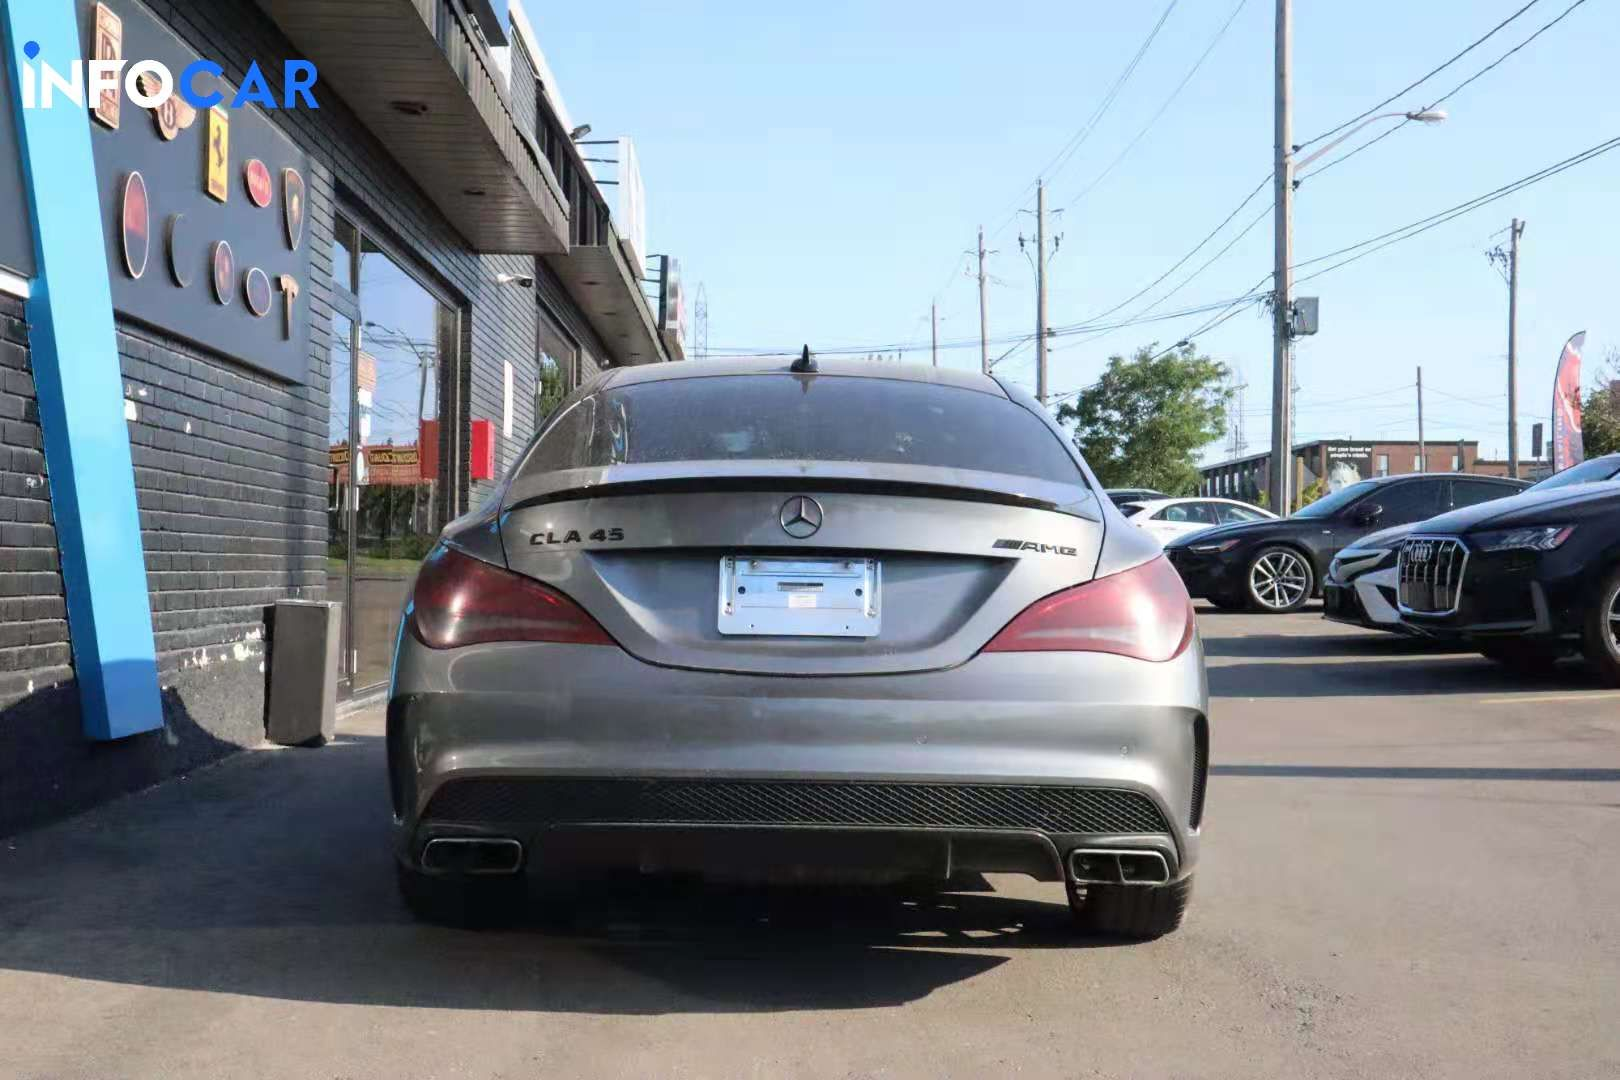 2014 Mercedes-Benz CLA-Class 45 - INFOCAR - Toronto's Most Comprehensive New and Used Auto Trading Platform